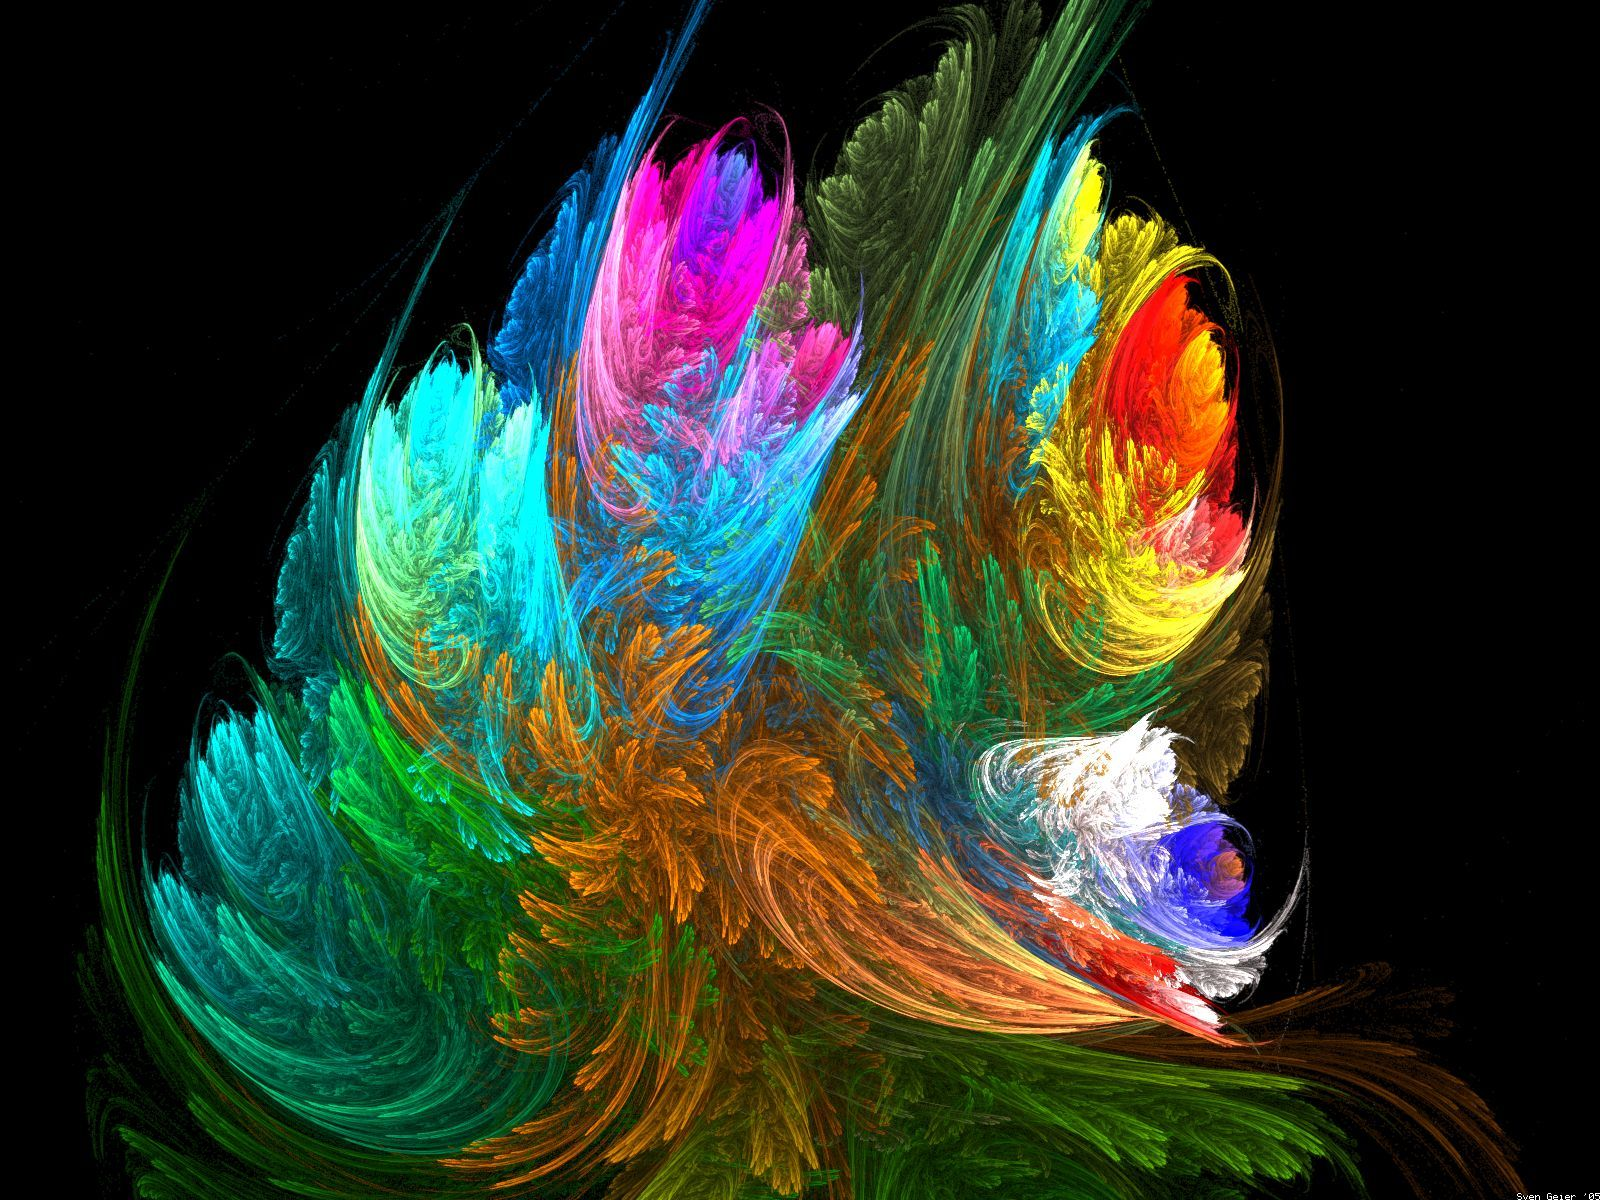 http://2.bp.blogspot.com/-bJwn28UiYzU/TlczE9TiISI/AAAAAAAAEYU/193We-1AaFA/s1600/amazing-abstract-wallpapers.jpg